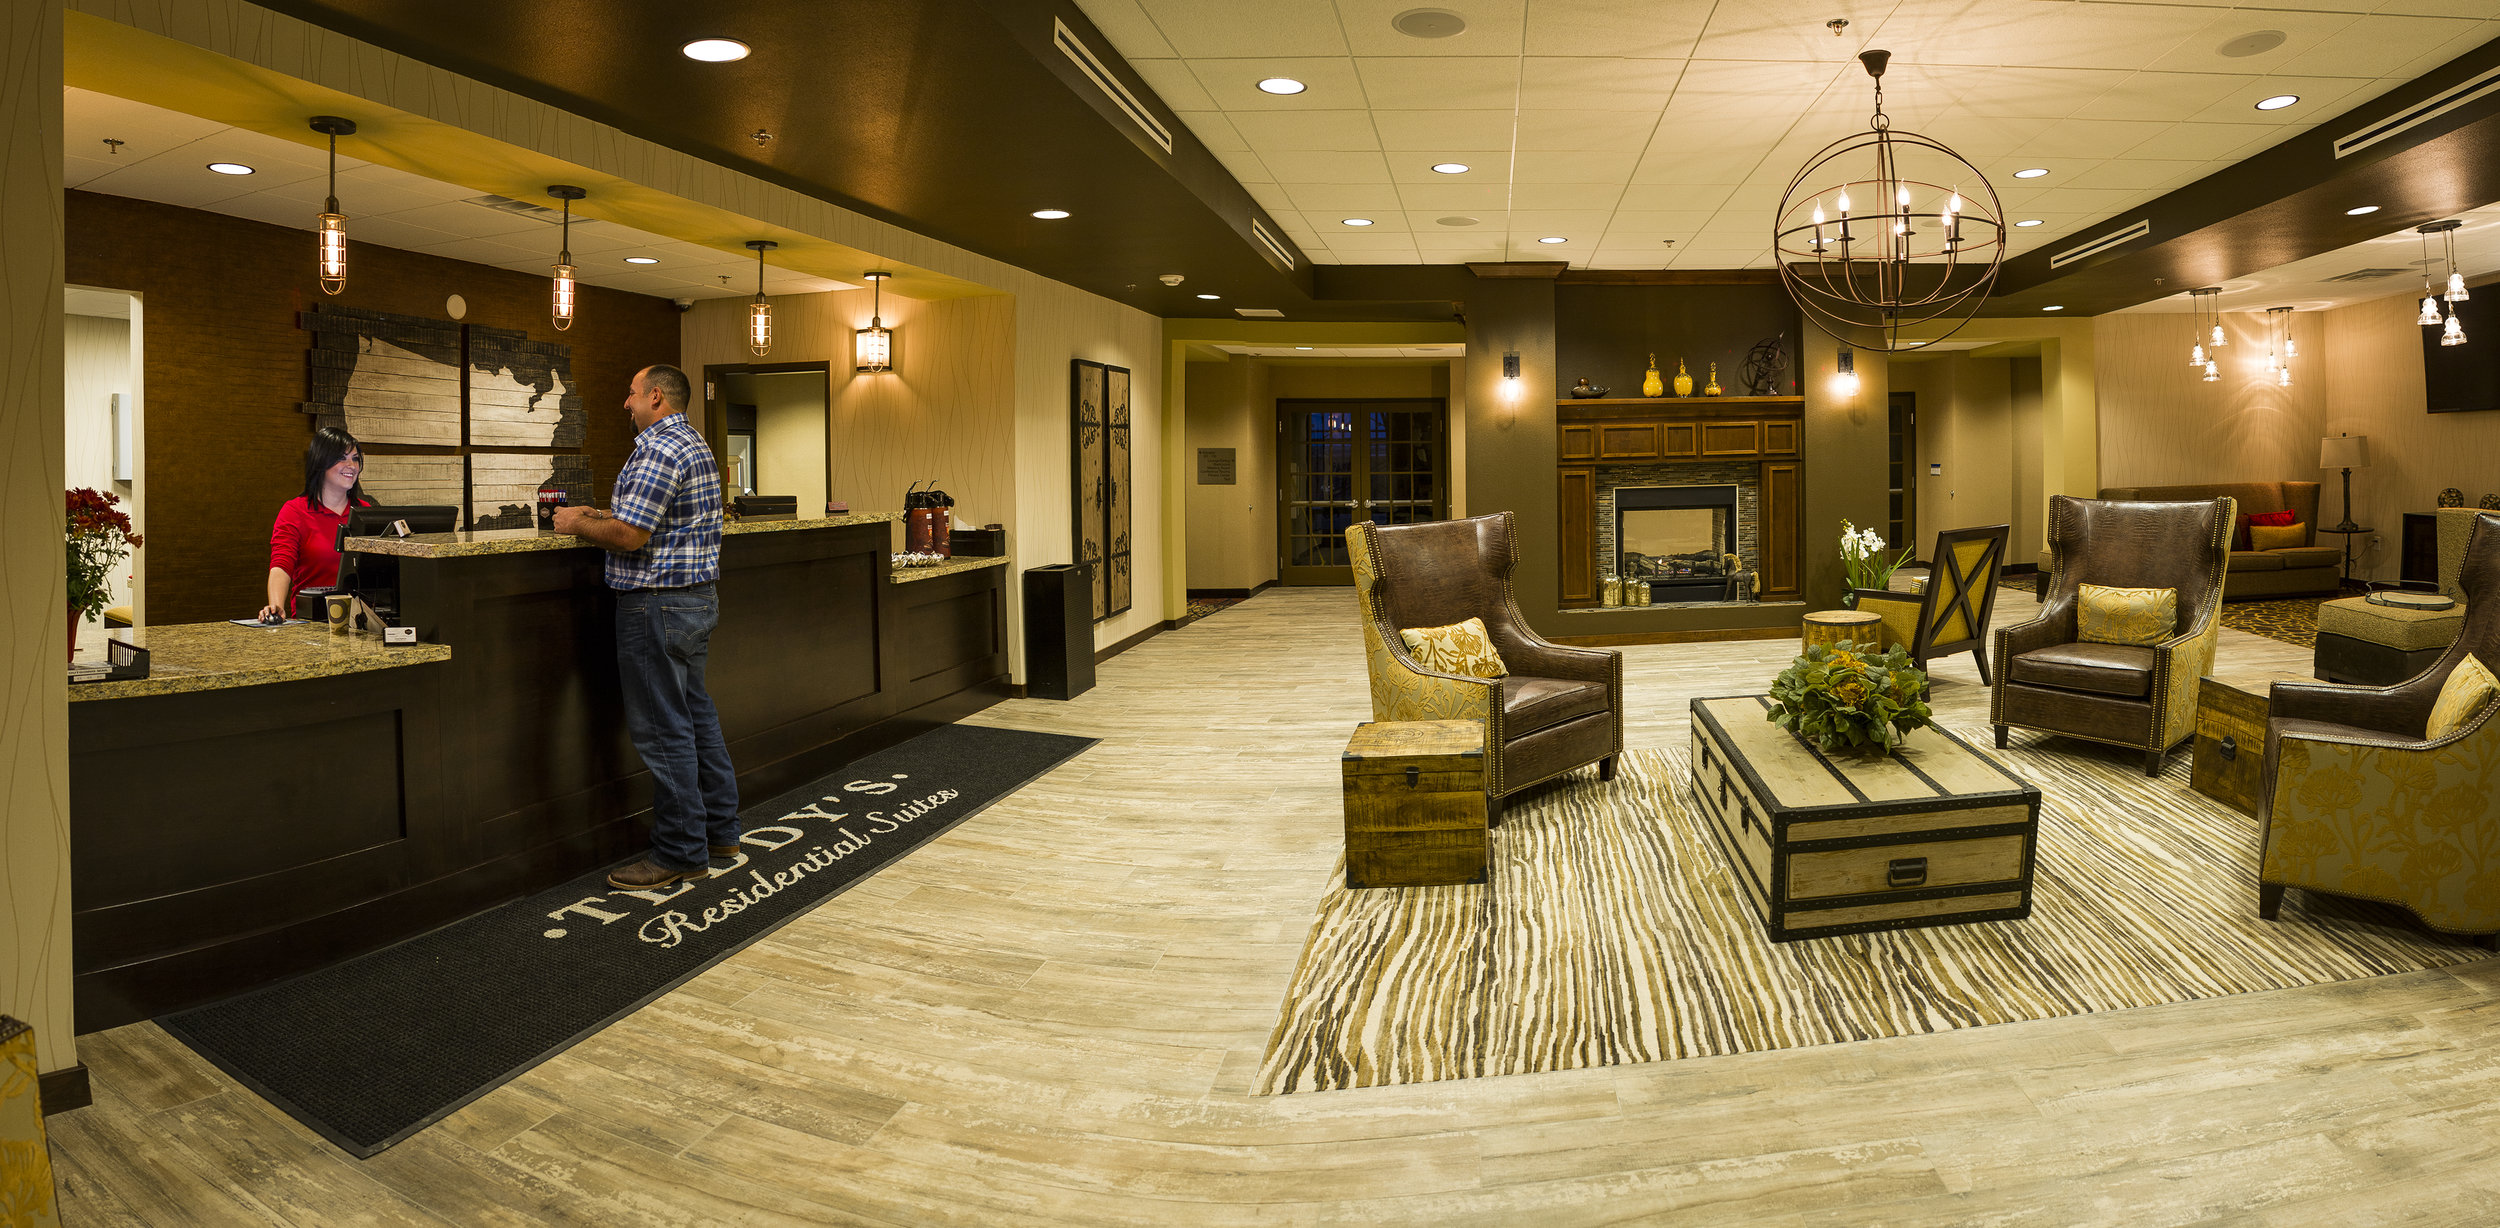 Lobby and front desk area in the Teddy's Residential Suites in Watford City, ND